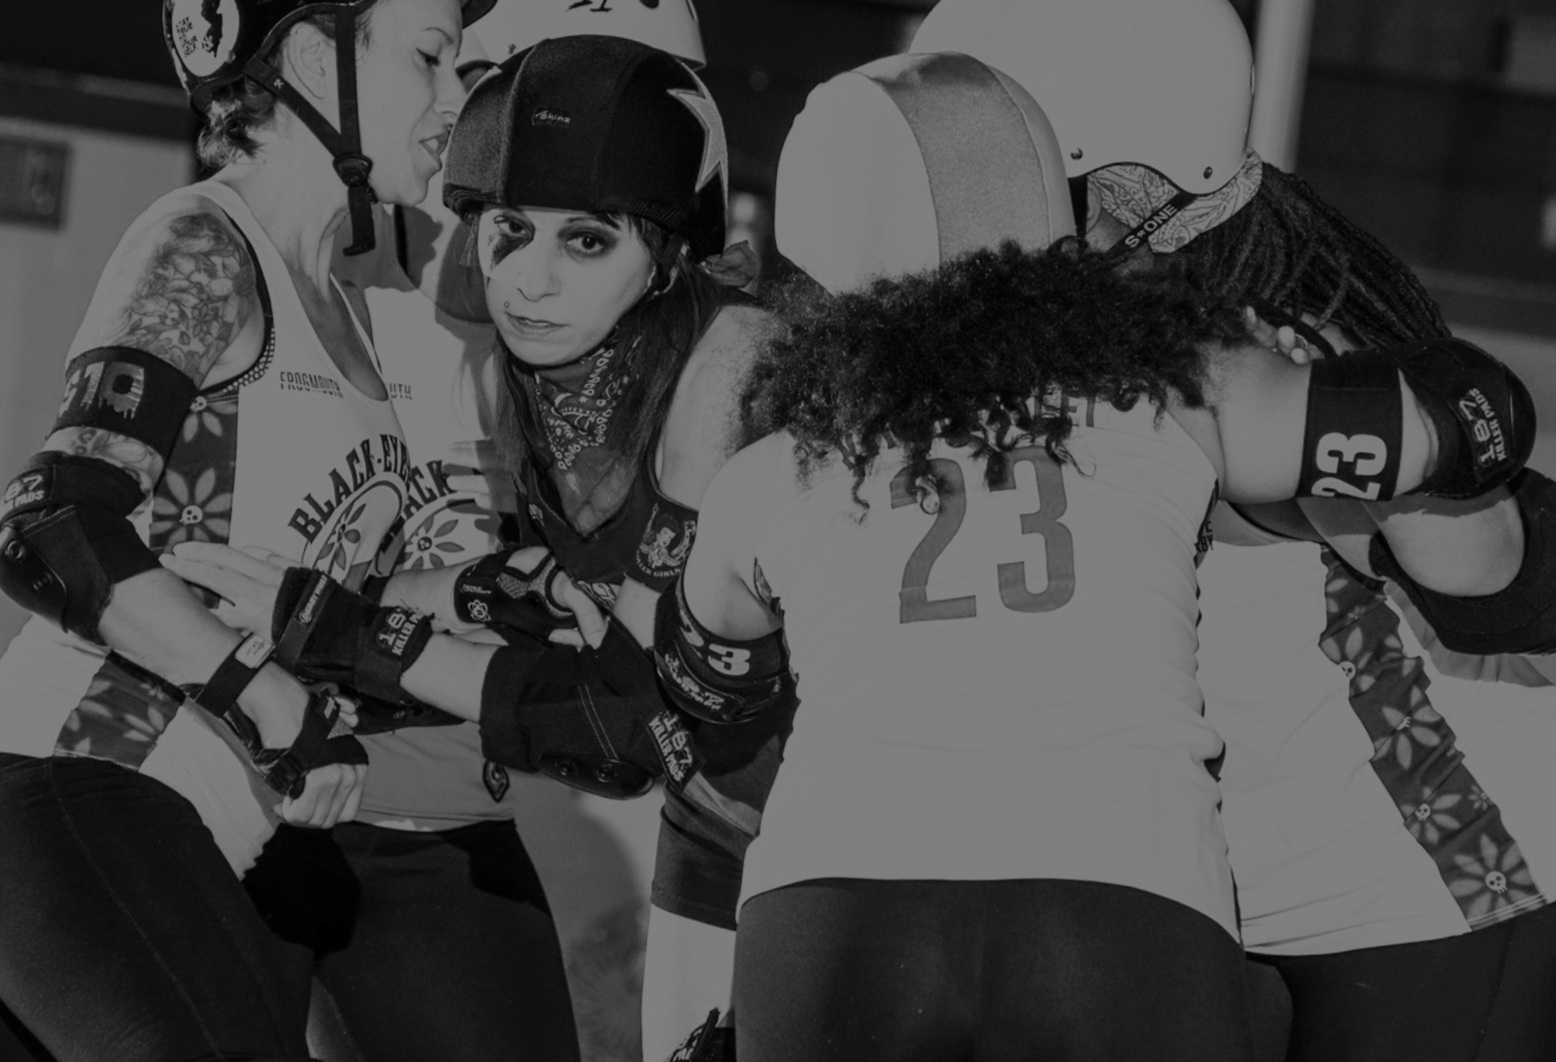 The 2019 Bmore Classic - Boston Roller Derby • Brandywine Roller Derby • Charm City Roller Derby • DC Rollergirls • Free State Roller Derby • Madison Roller Derby • Ottawa Valley Roller Derby • Queen City Roller Girls